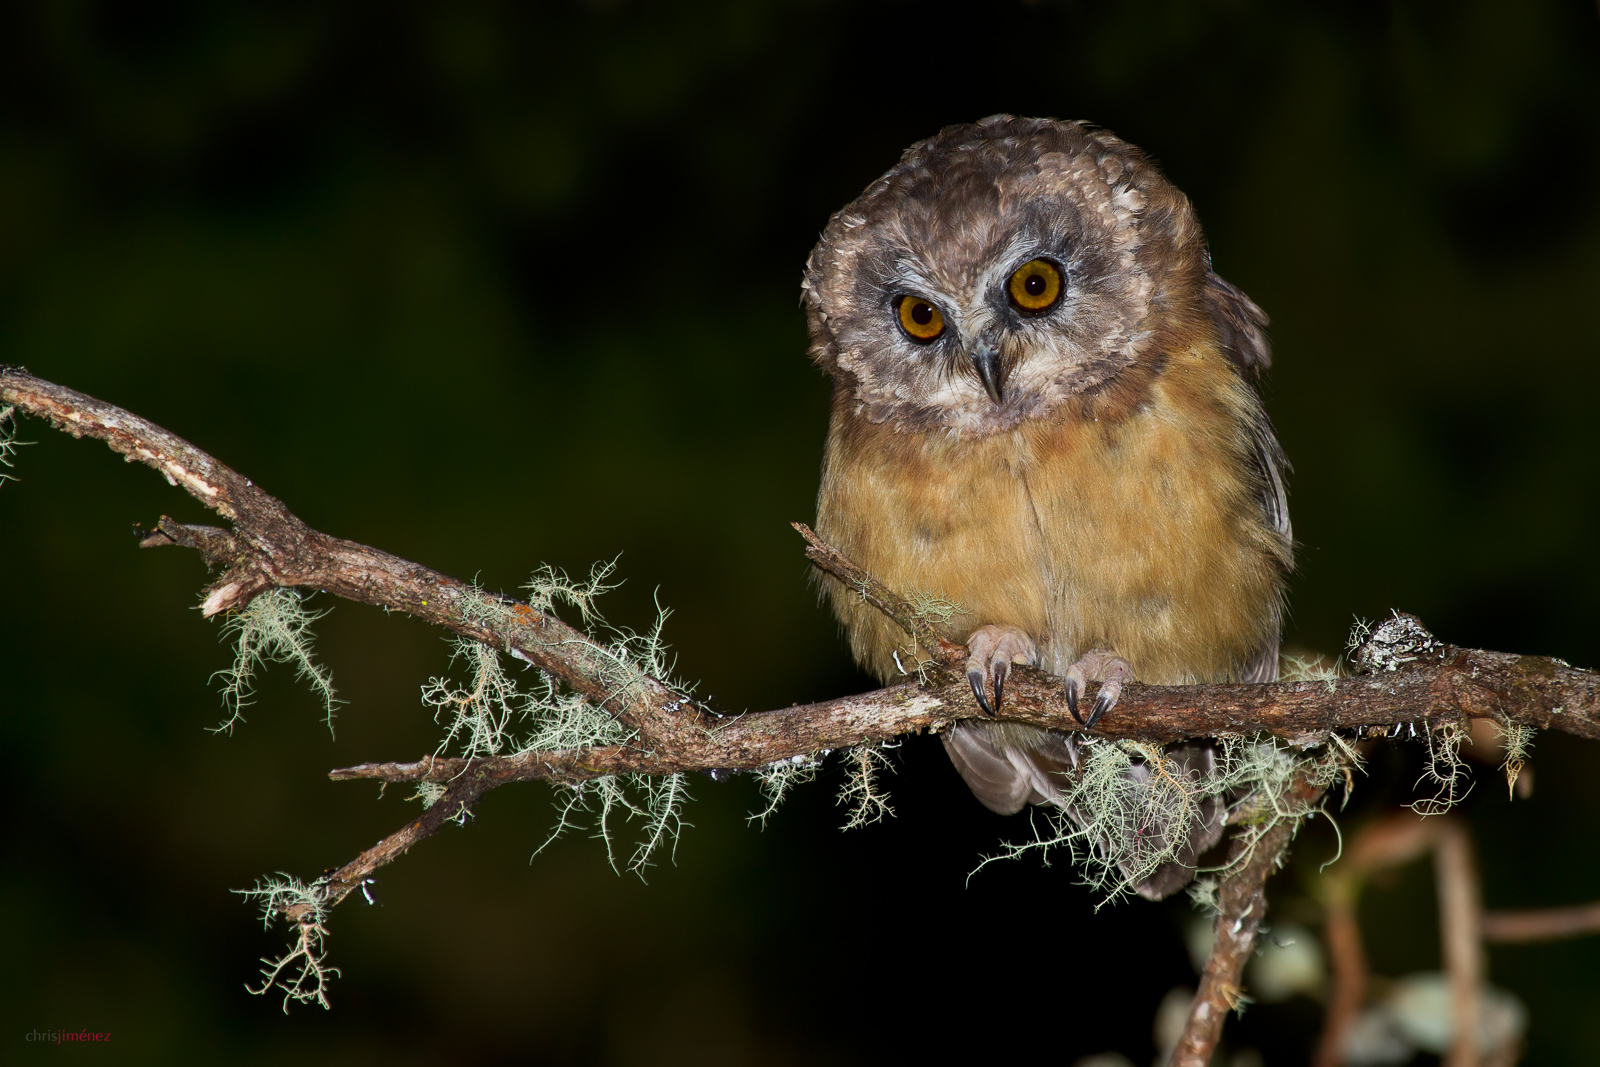 Unspotted Saw-whet Owl (Aegolius ridgwayi). Probatly one of the very few pictures in the wild of this very rare owl. After more than 1 years of looking for the spicie on top peaks of Costa Rica, I manage to get a shot of this Juvenile. Taken at Chirripo National Park, Costa Rica. For more visit http://www.chrisjimenez.net